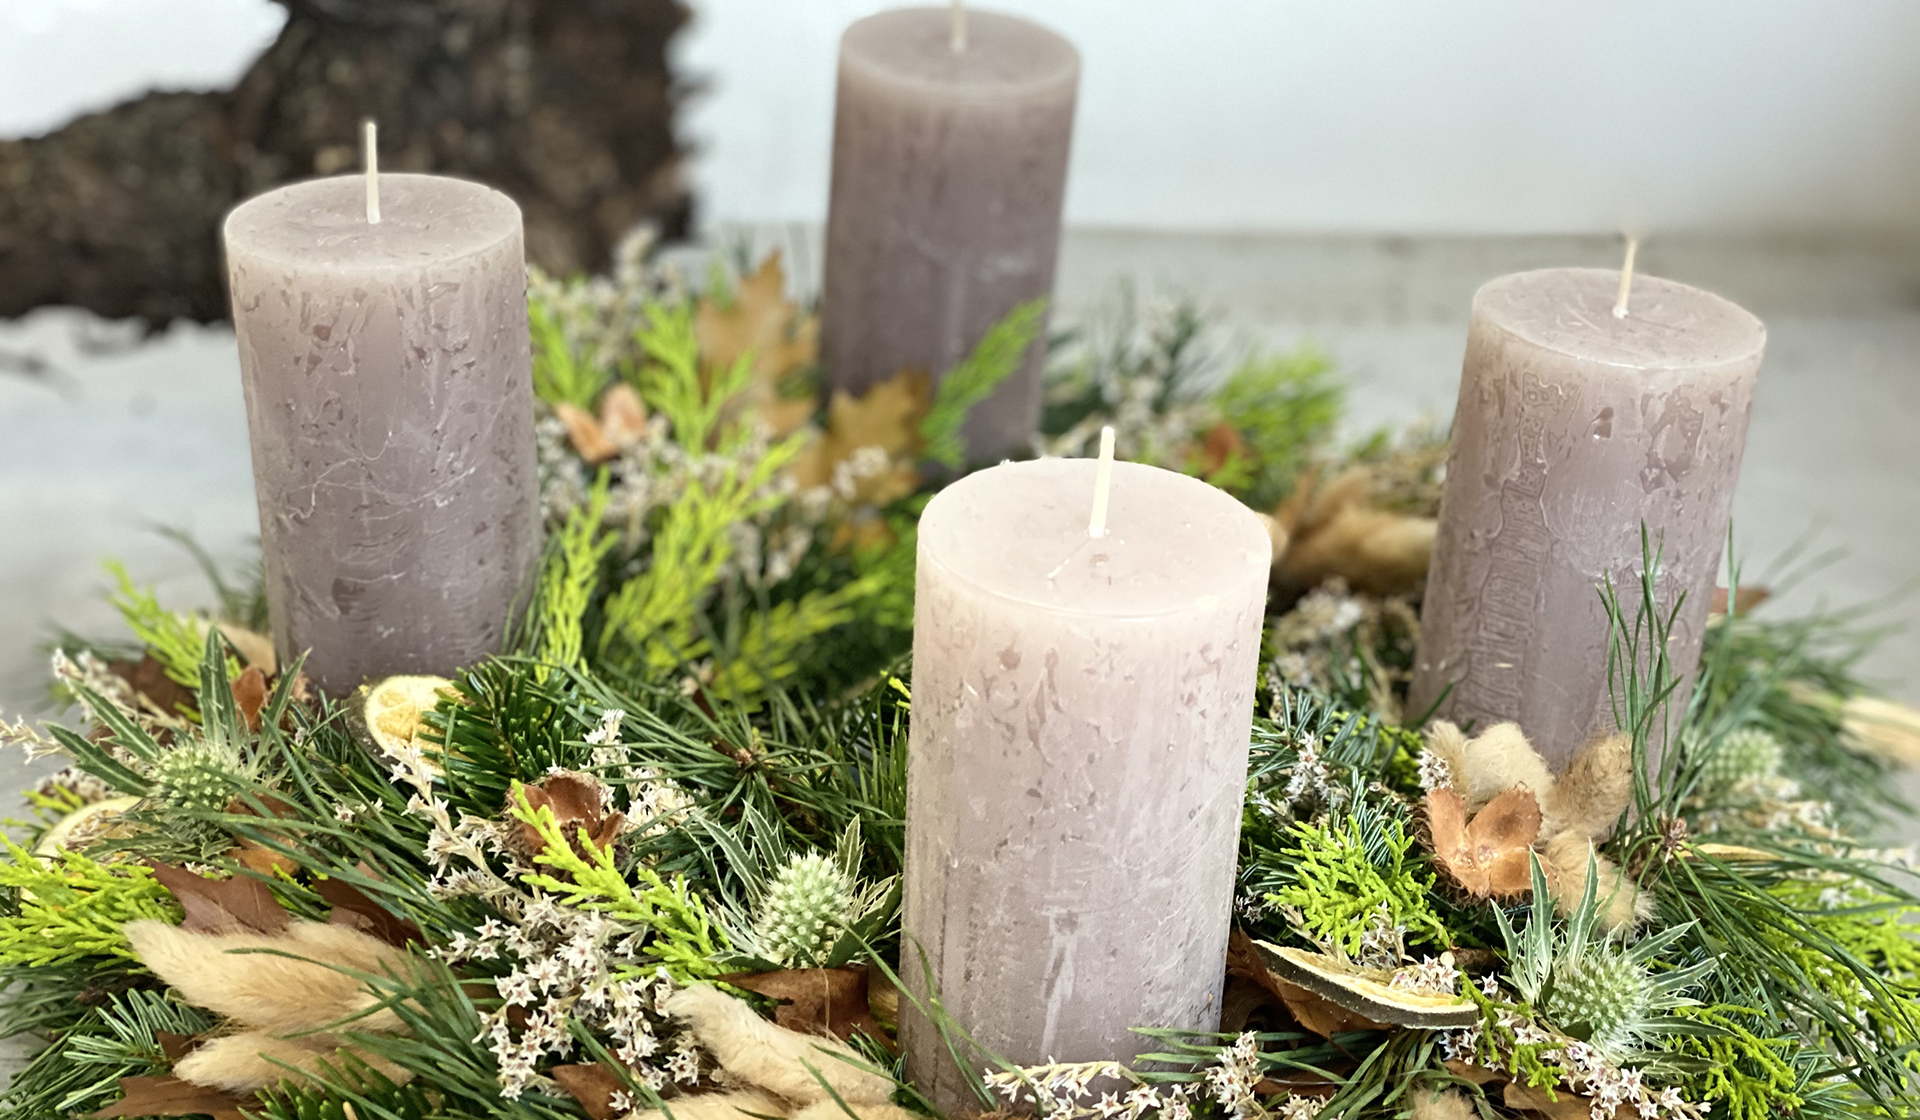 myFlowers_Adventkranz2020_4